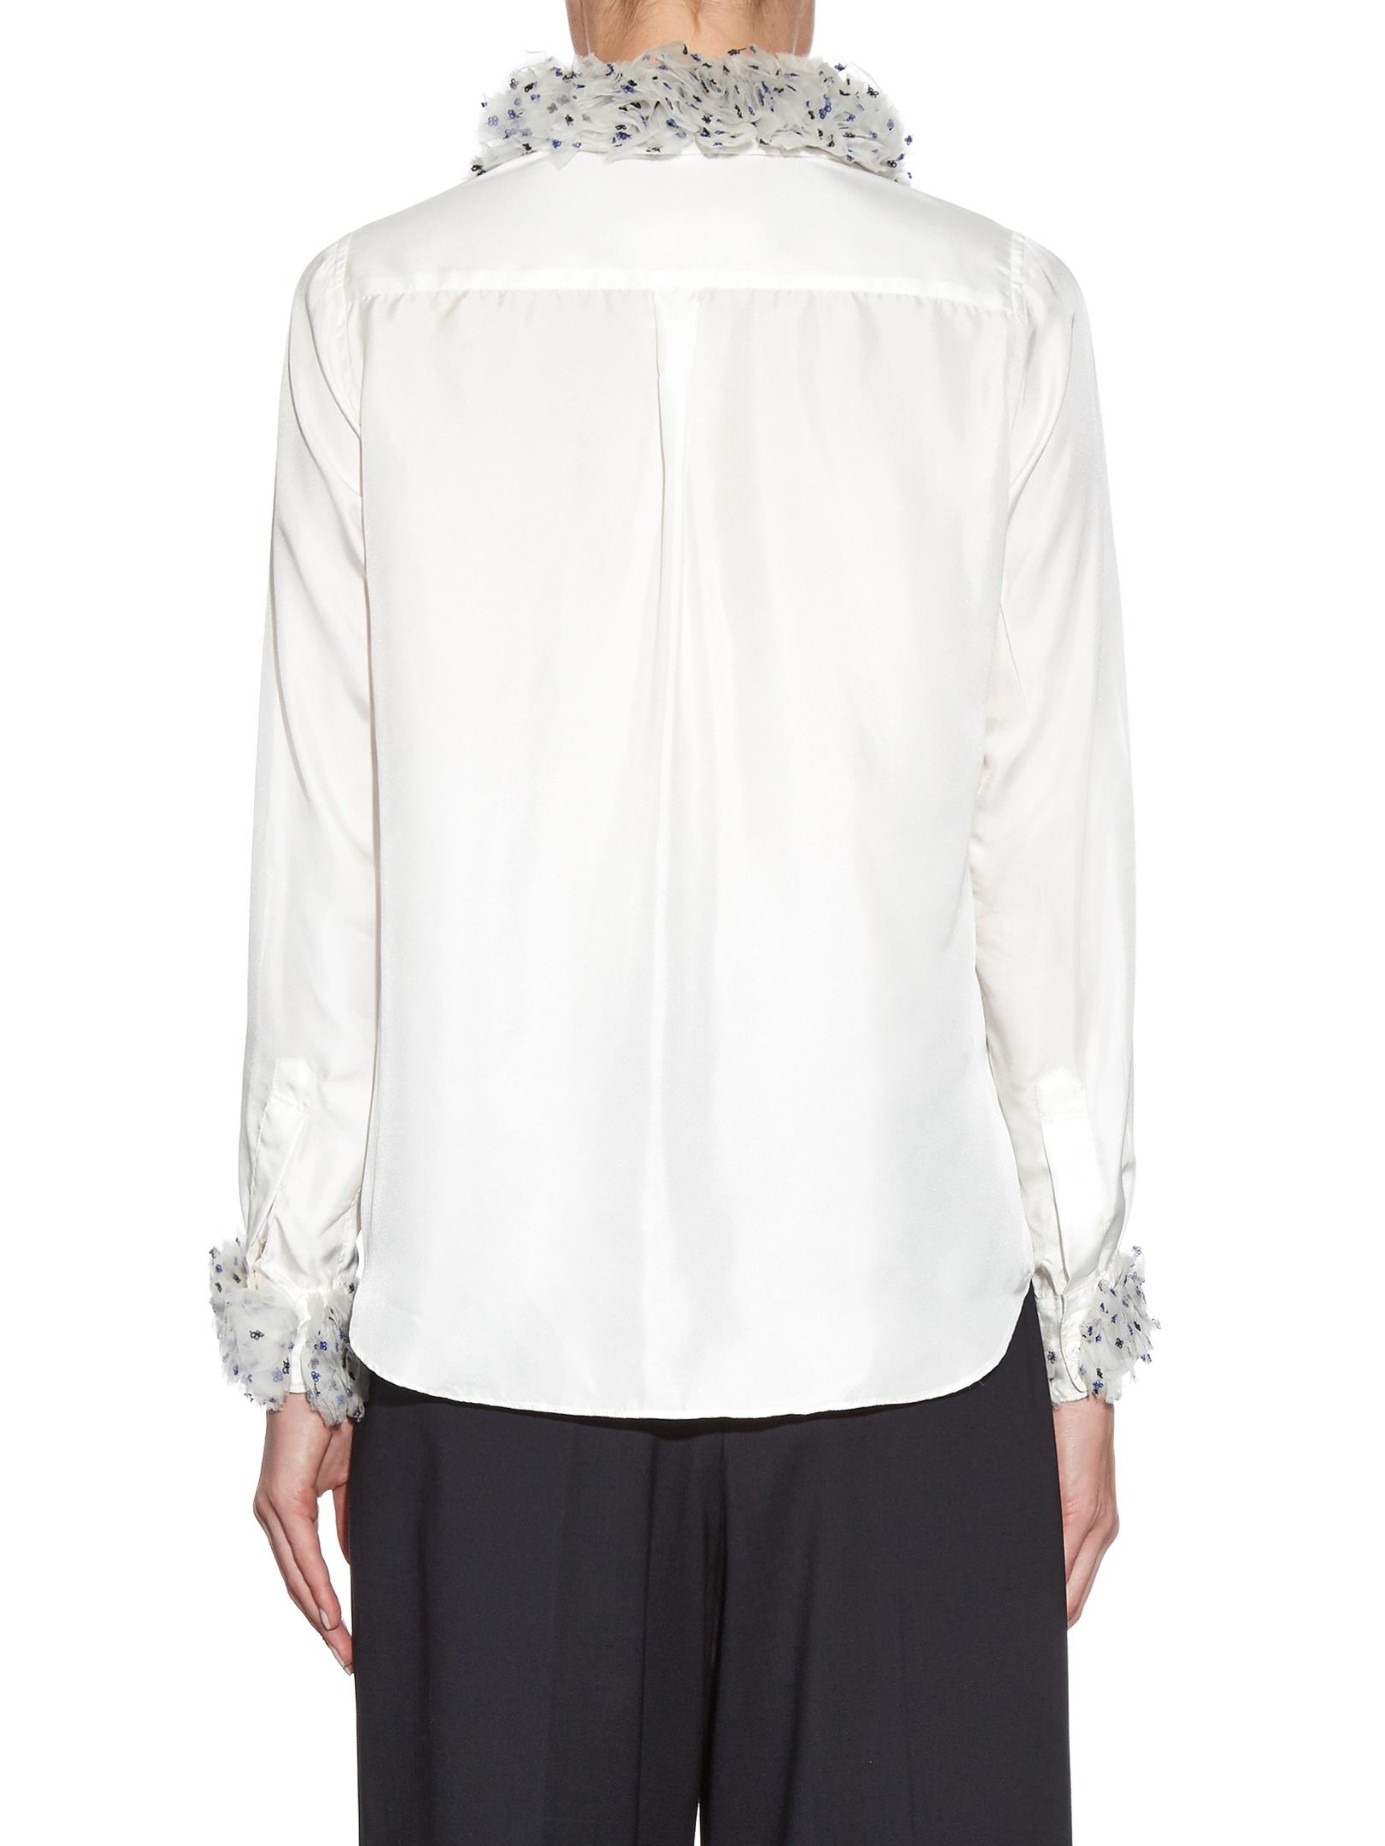 jupe by jackie buskila ruffled detail silk blouse in white